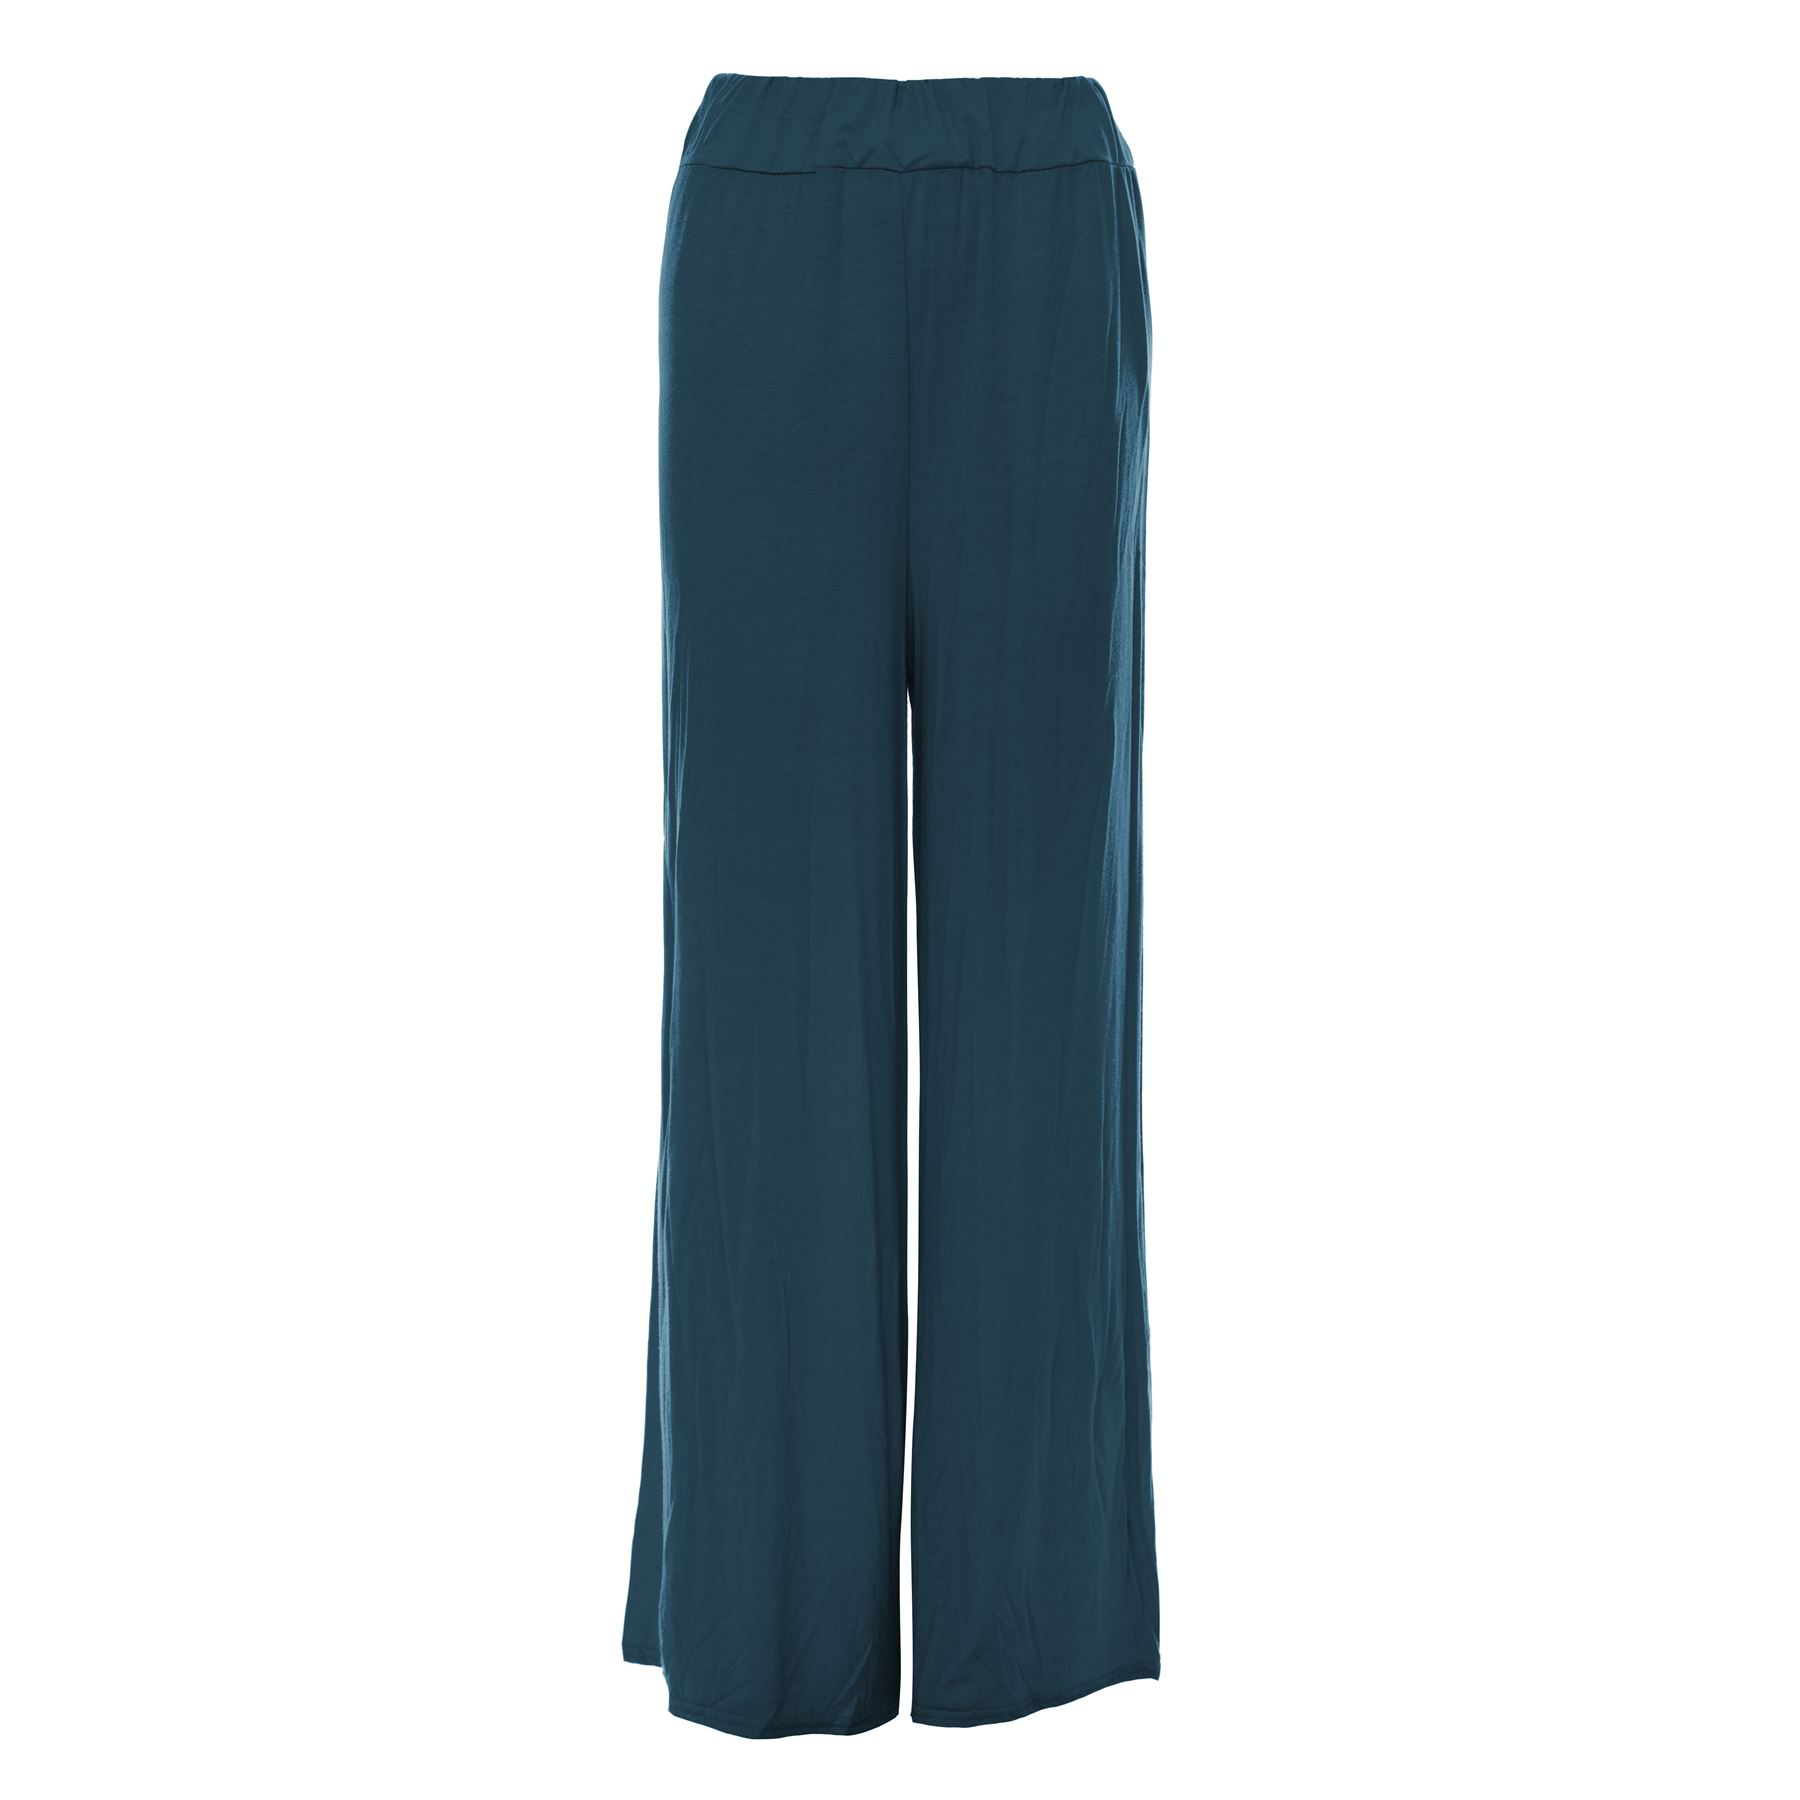 Excellent Boho Chic, With A Feminine Flair These Palazzo Pants By Sky &amp Sand, Feature A Solid Design, A Shirred Elastic Waist, And Fabric Ties 100% Rayon Boho Chic, With A Feminine Flair These Palazzo Pants By Sky &amp Sand, Feature A Solid Design, A